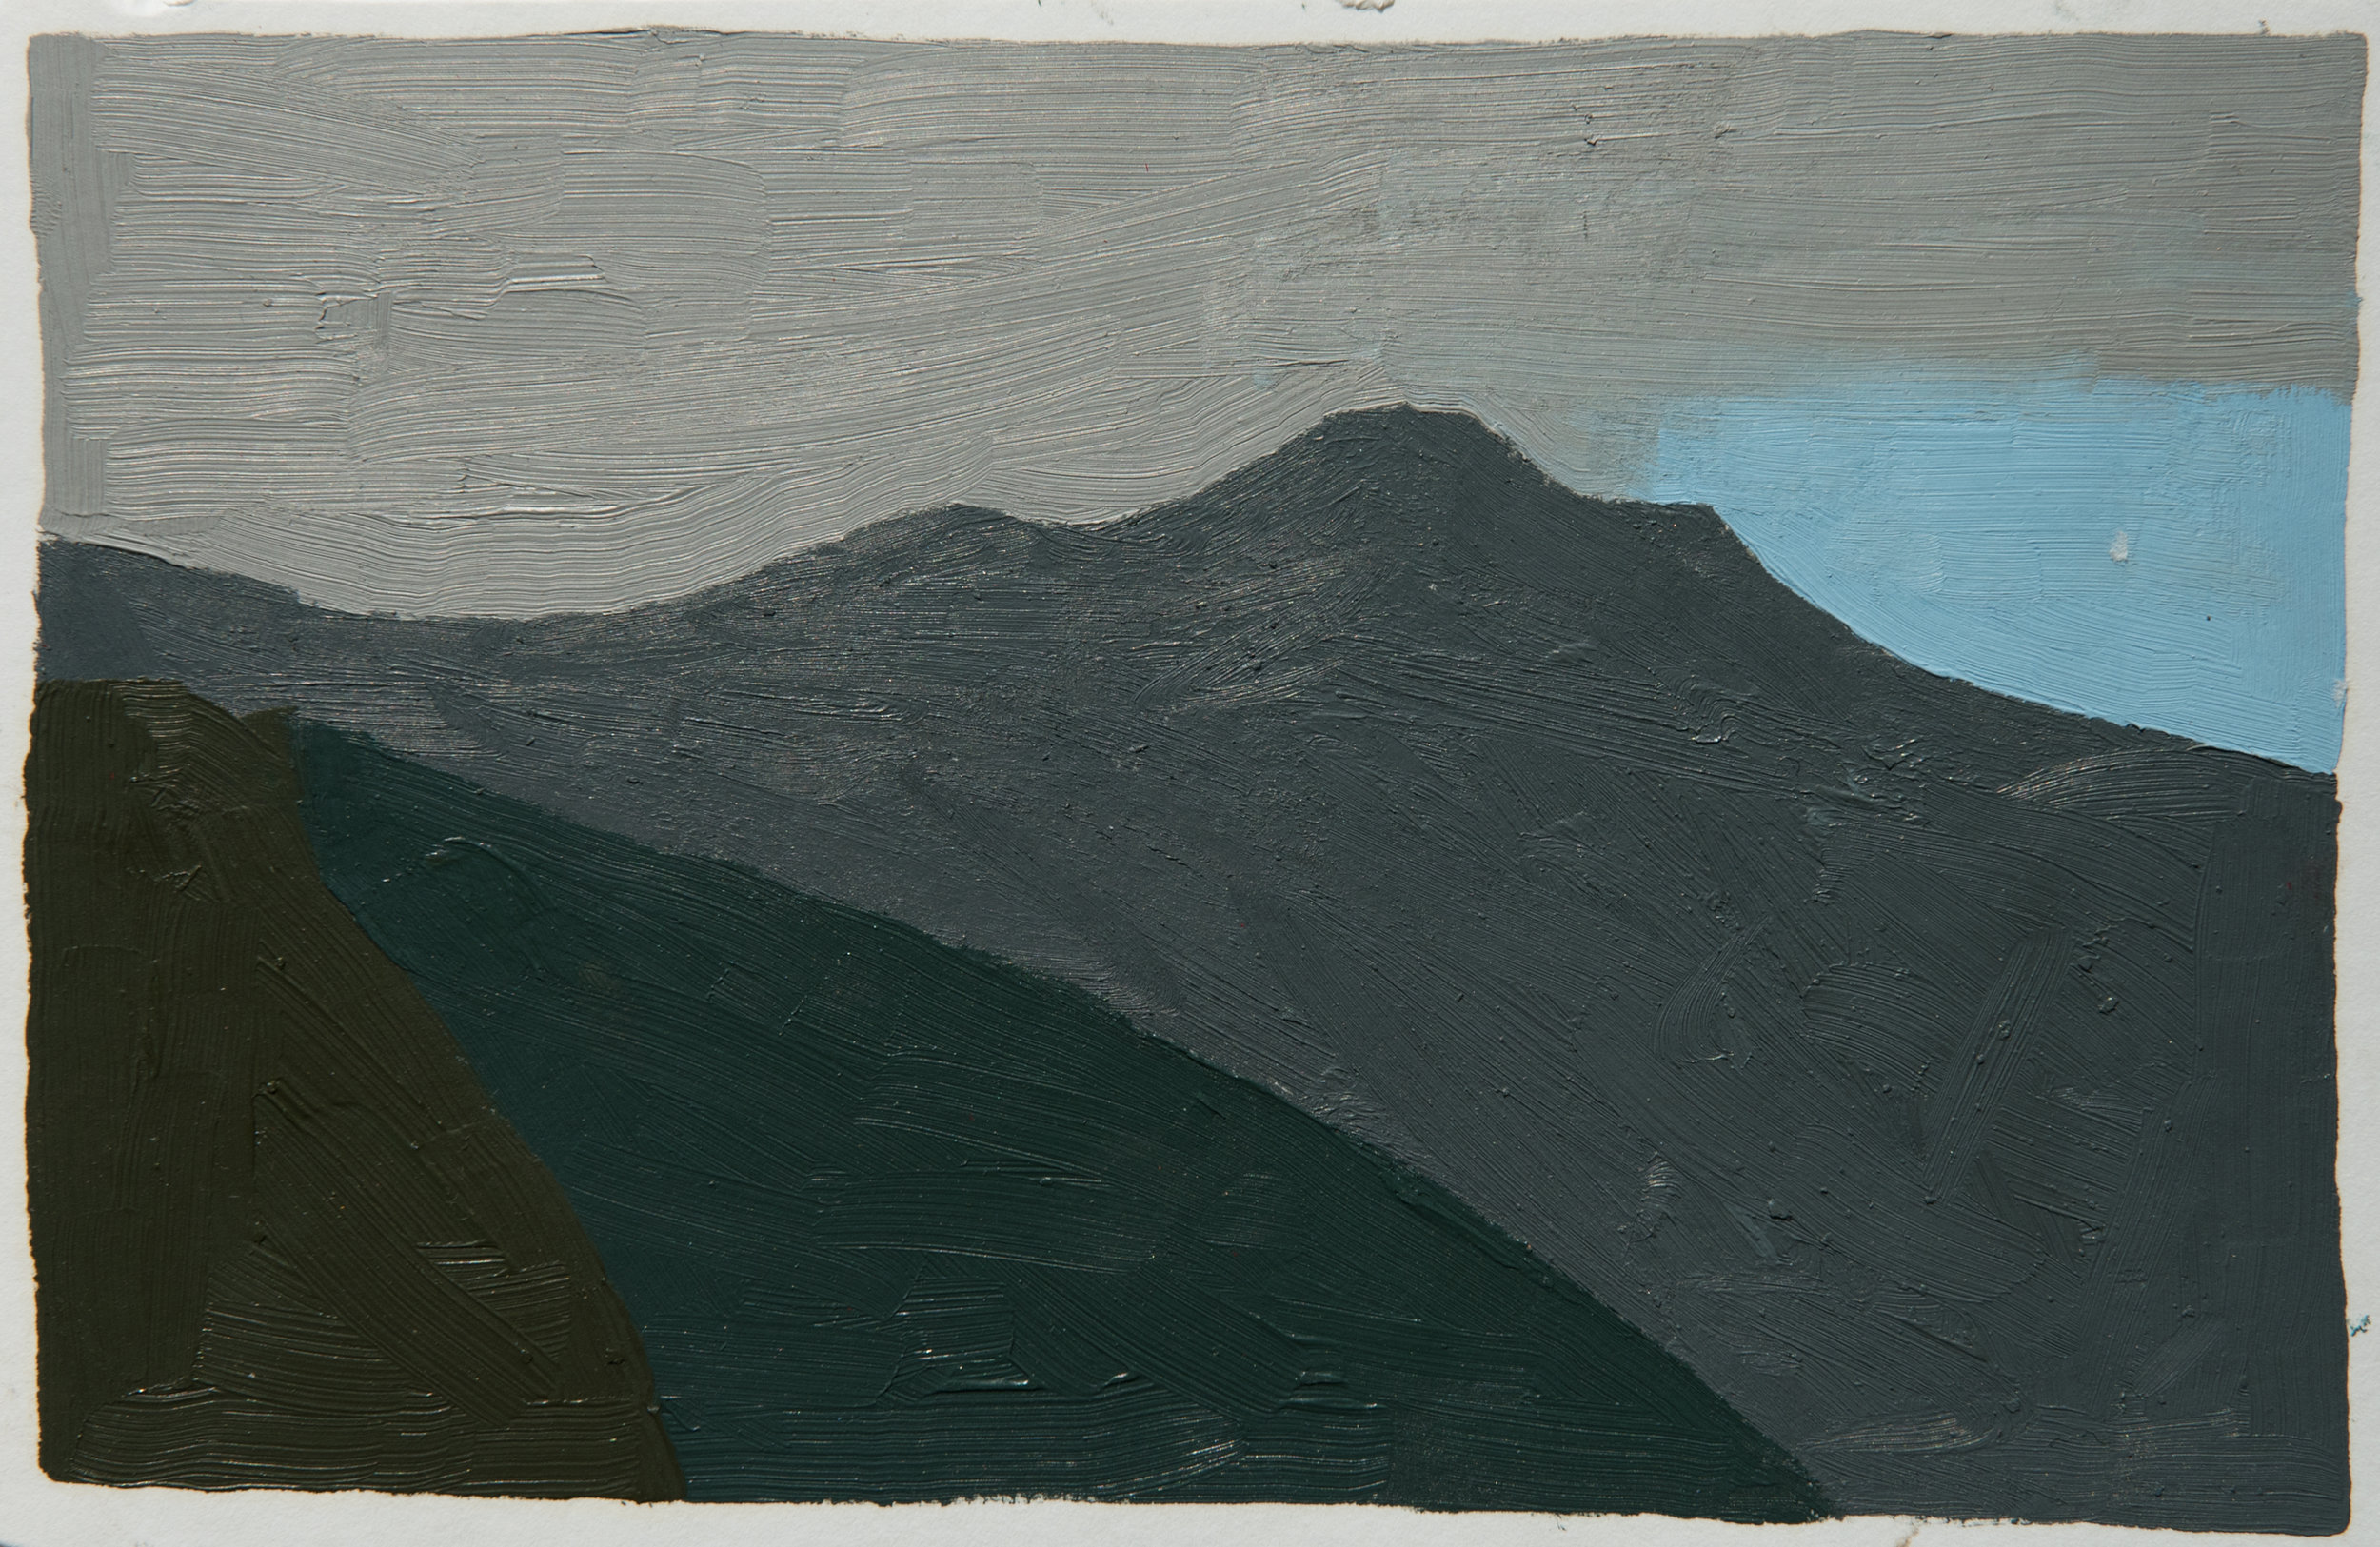 mt tam 1_5.5 x 8.5 inches_oil on paper_2018.jpg